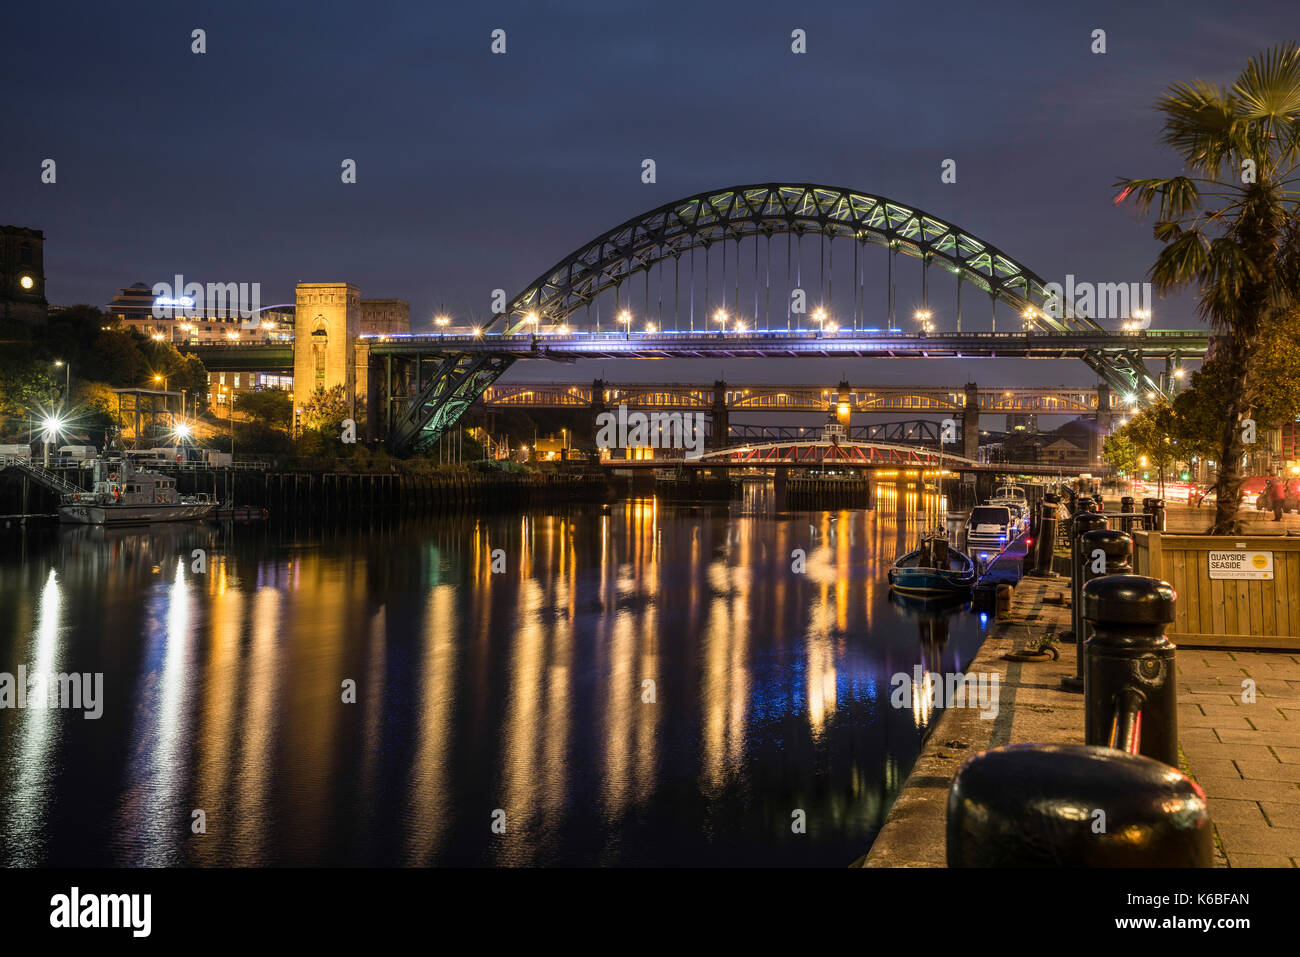 The Newcaste-Upon-Tyne/Gateshead quayside at night, showing the Tyne bridge and reflections in the River Tyne Stock Photo